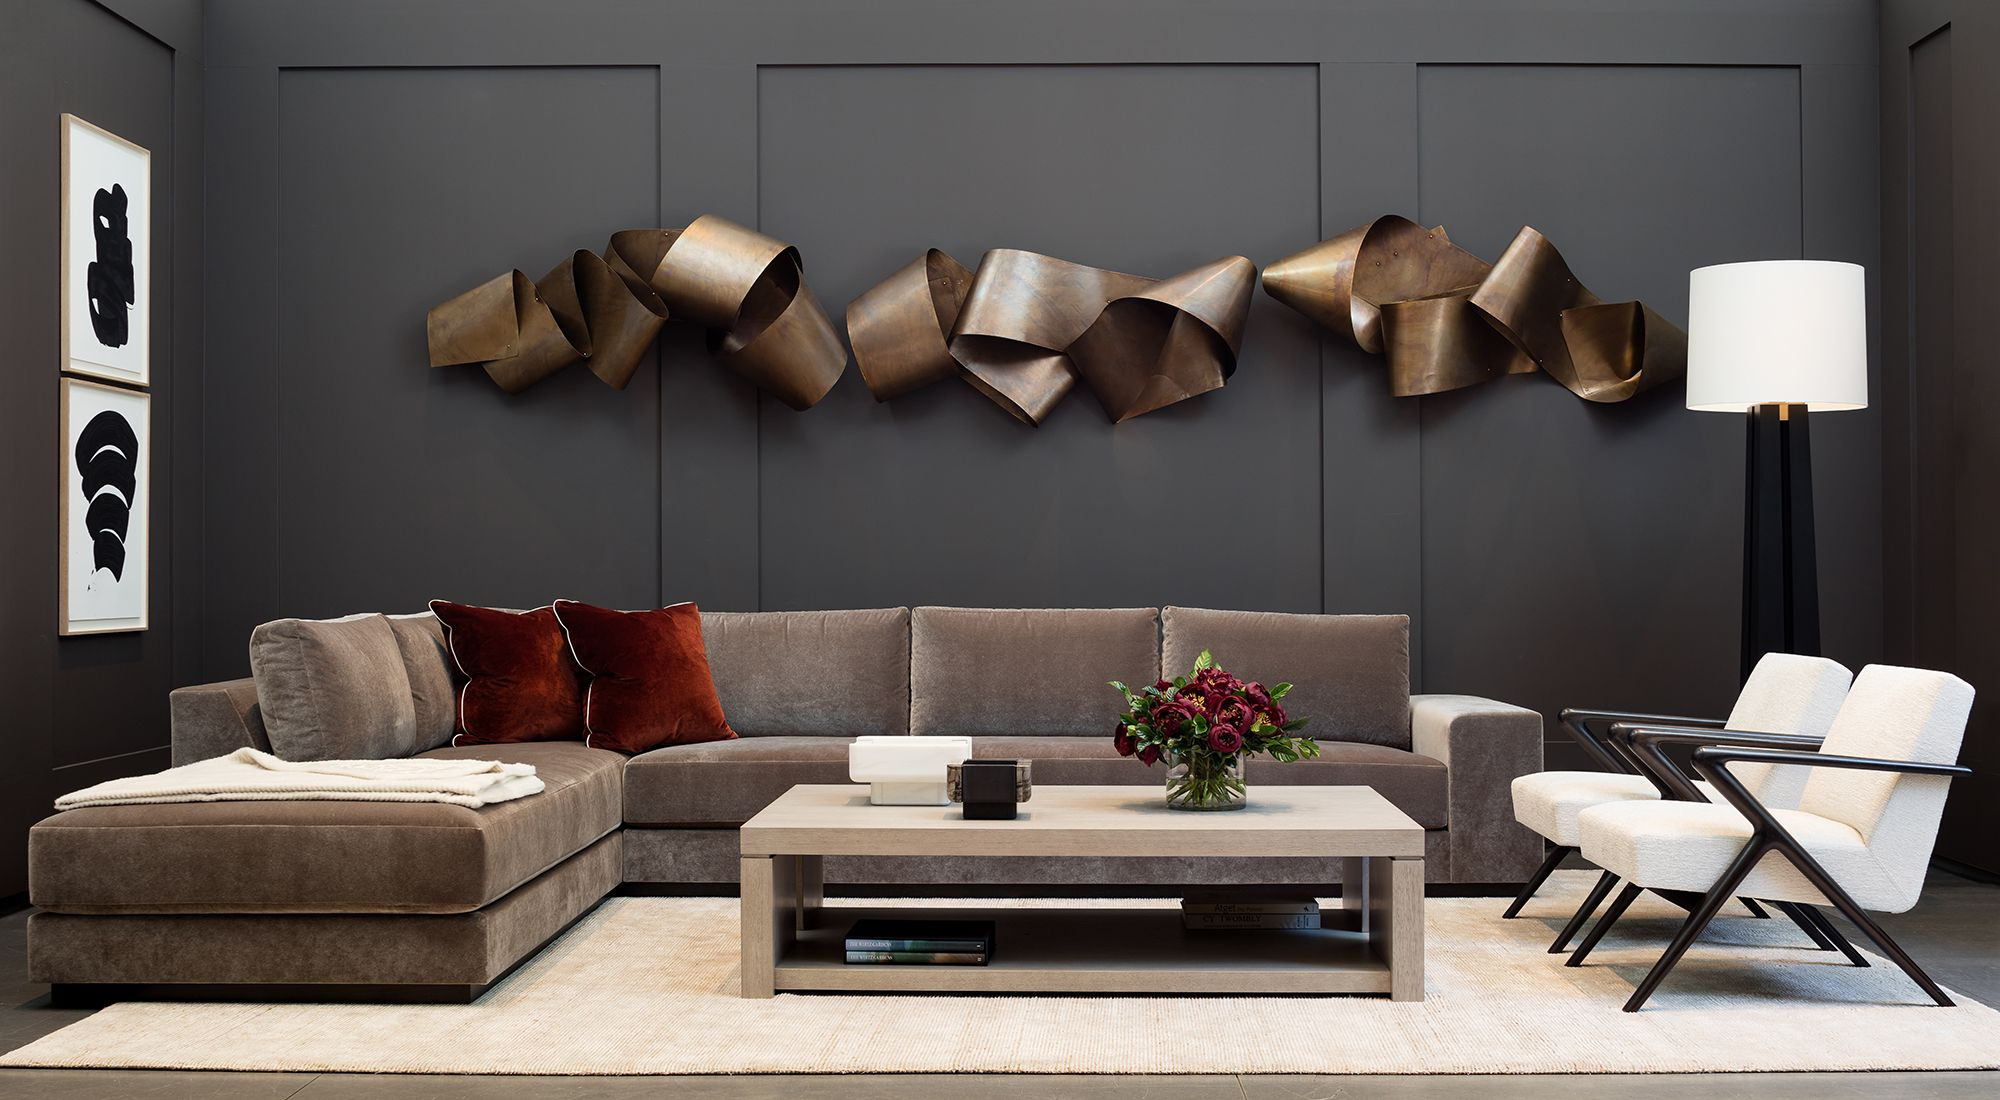 Interior Design Wall Decor Holly Hunt Modern Metal Wall Sculpture In Contemporary